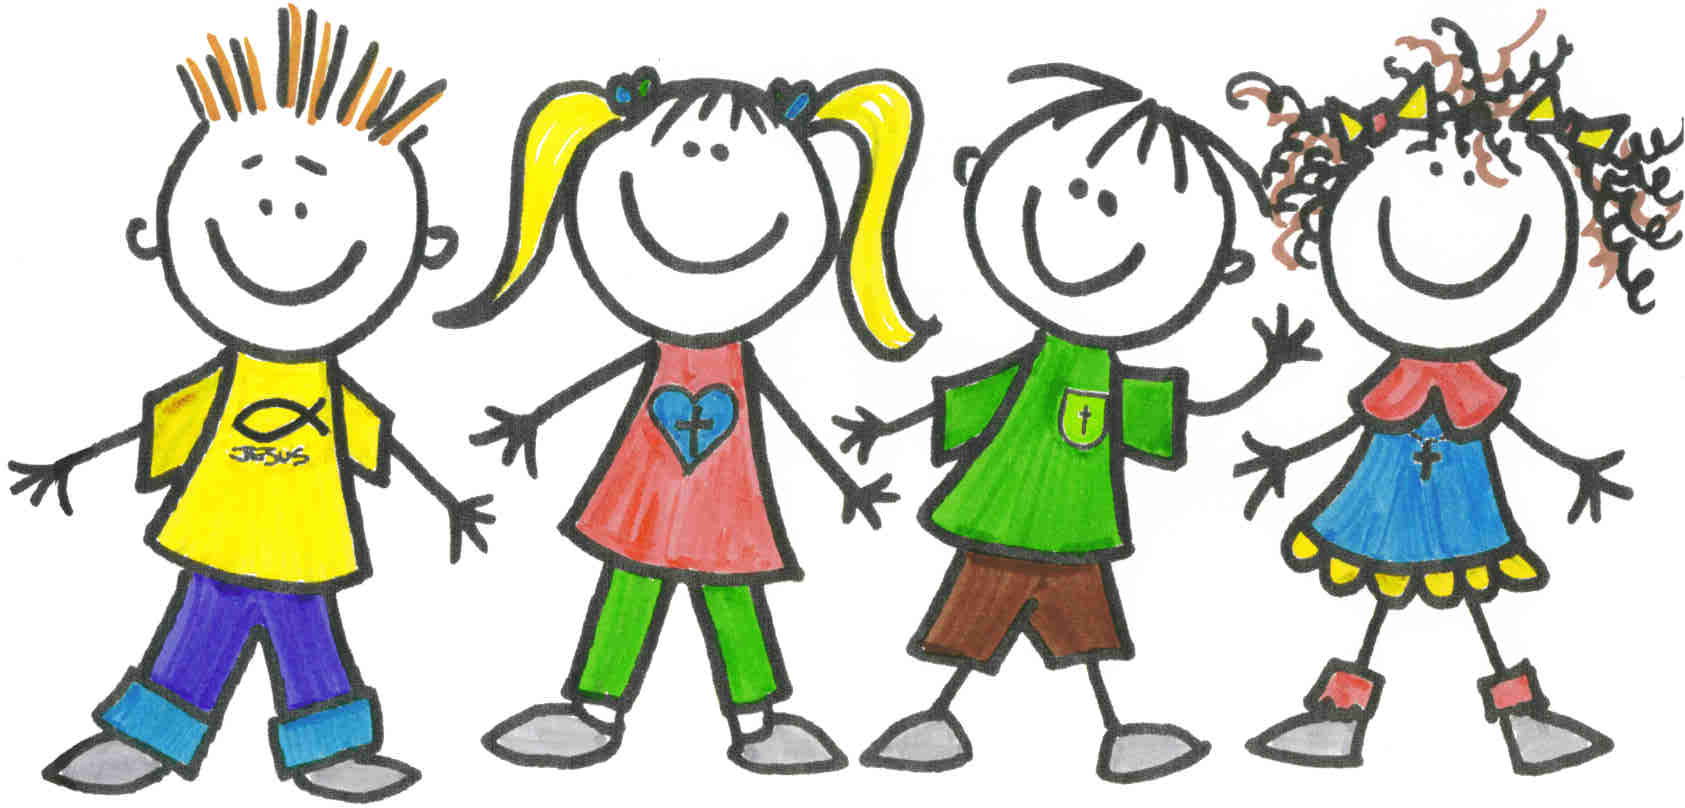 Character day in pre k clipart jpg library Character day in prek clipart - ClipartFox jpg library